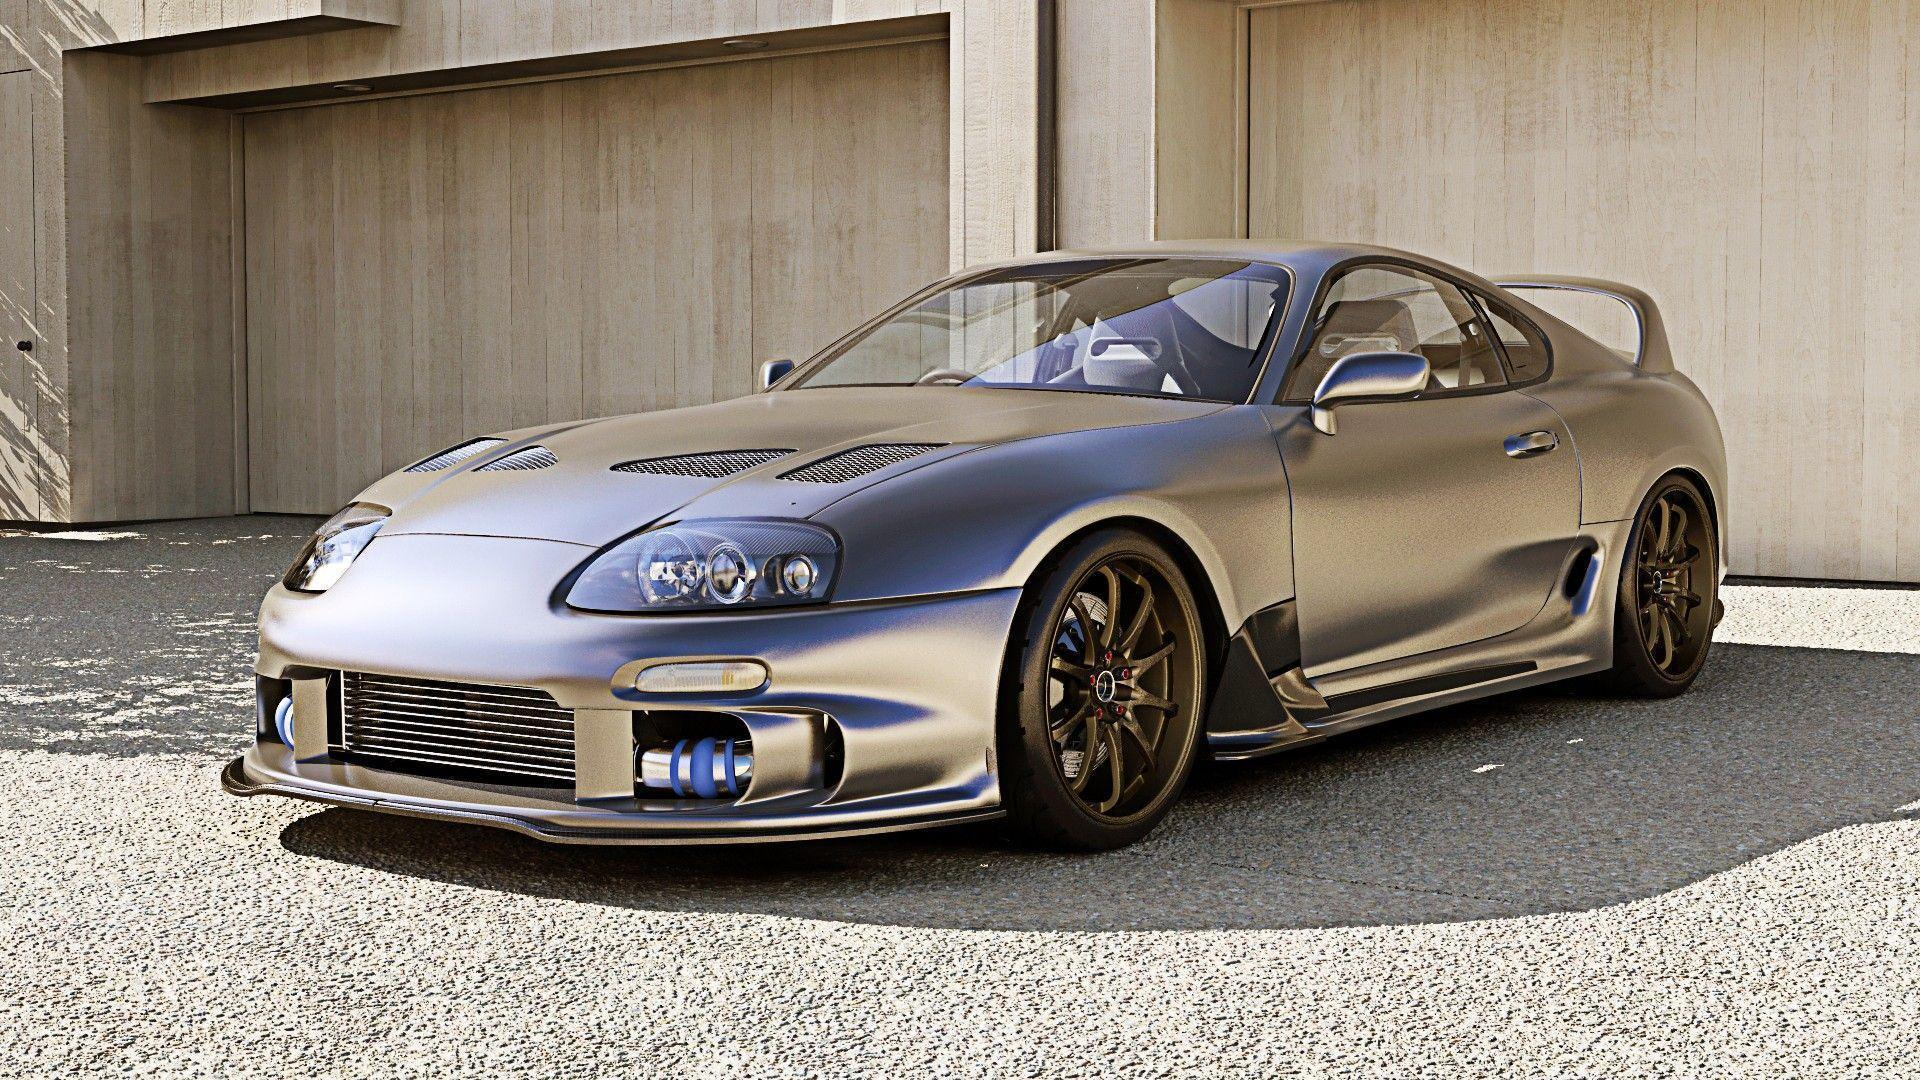 toyota supra wallpapers wallpaper cave. Black Bedroom Furniture Sets. Home Design Ideas